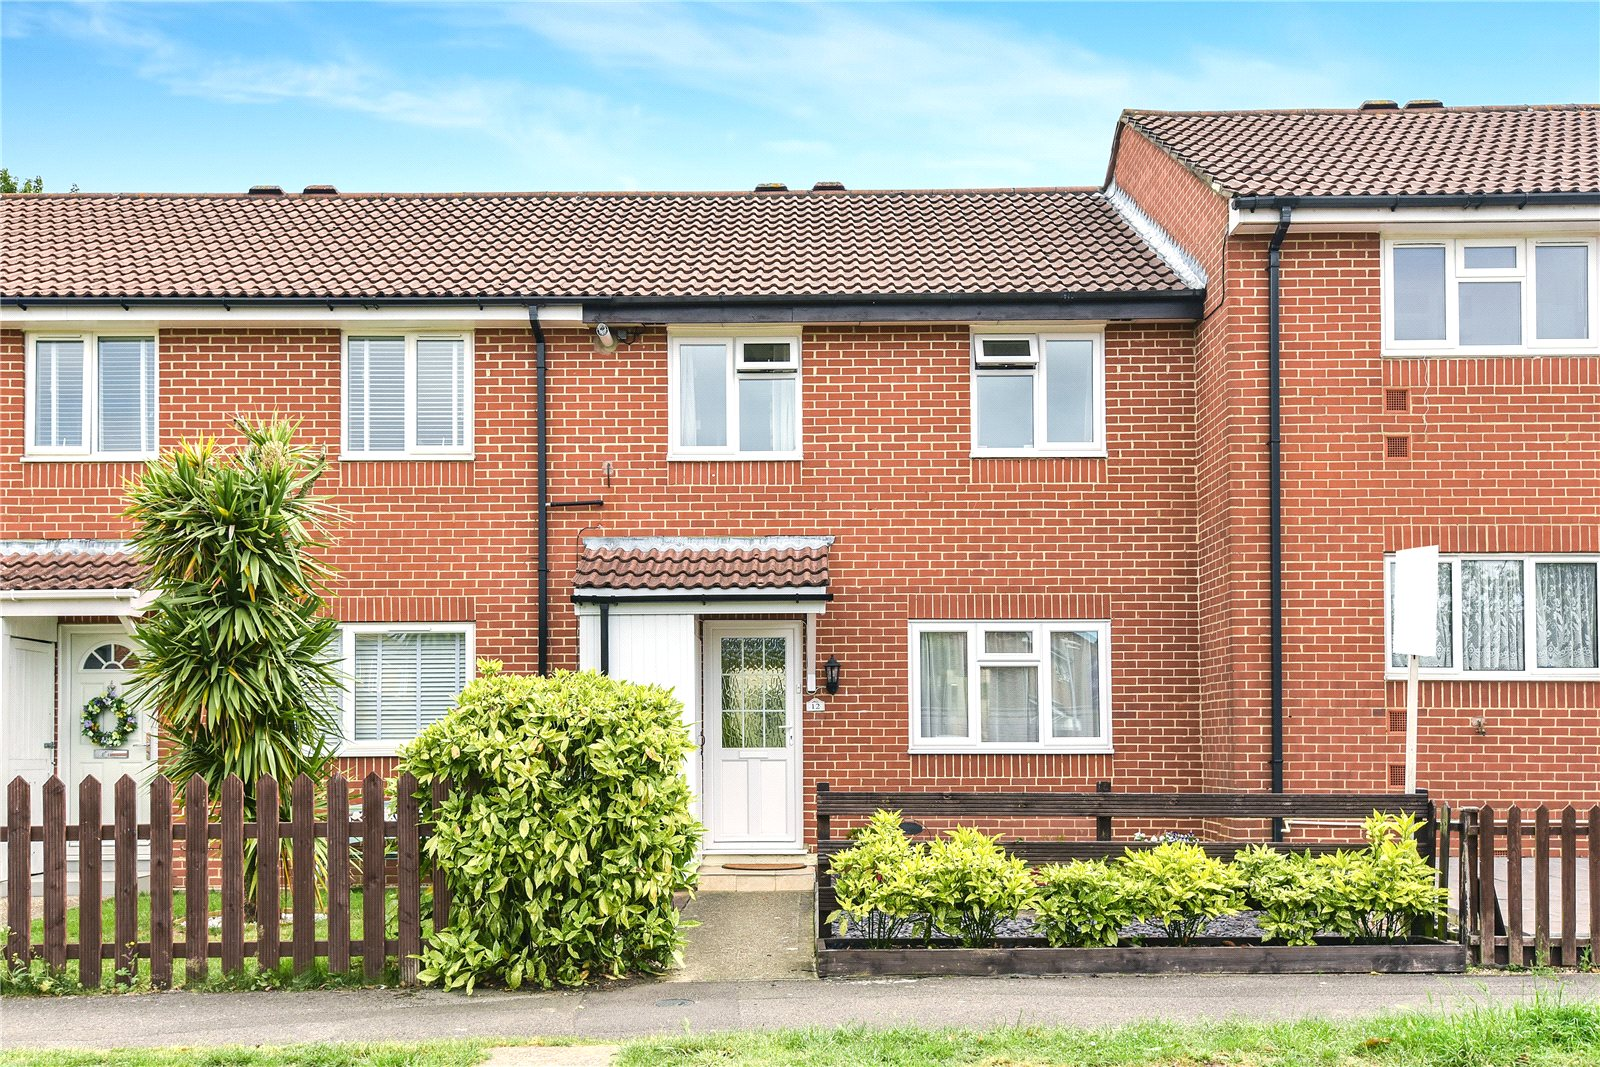 3 Bedrooms Terraced House for sale in Evenlode Way, Sandhurst, Berkshire, GU47